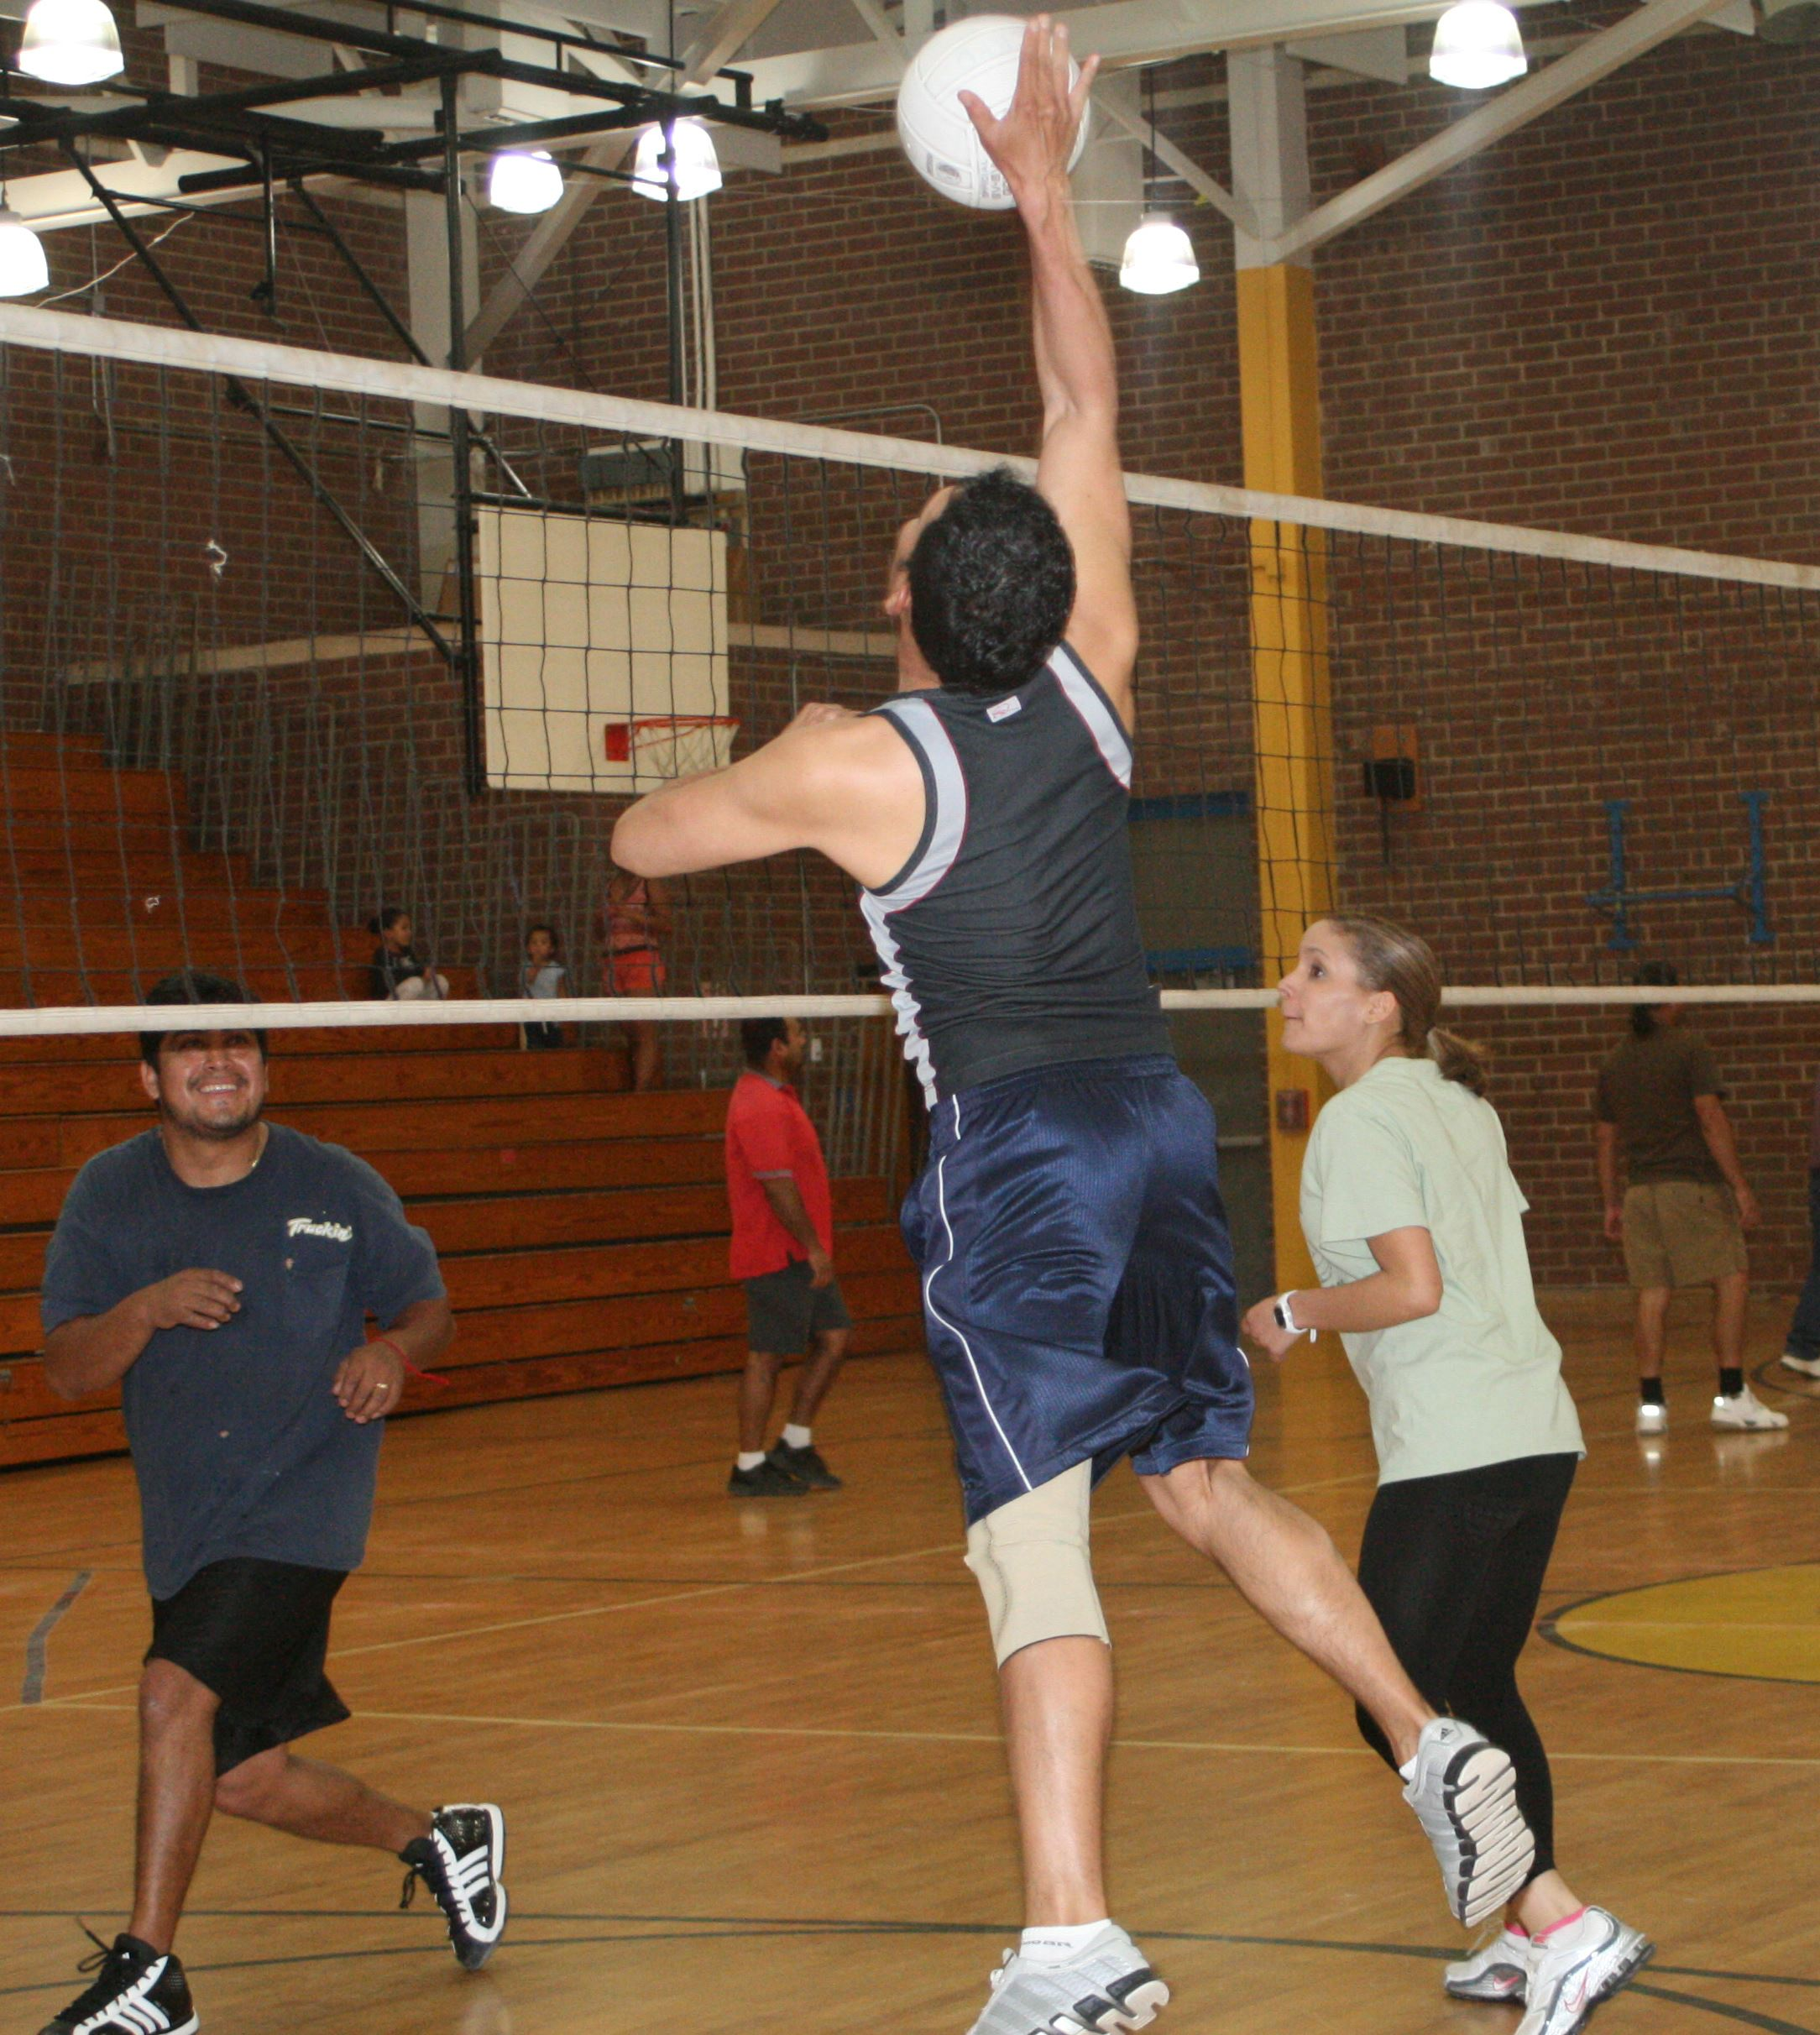 VolleyballDropIn